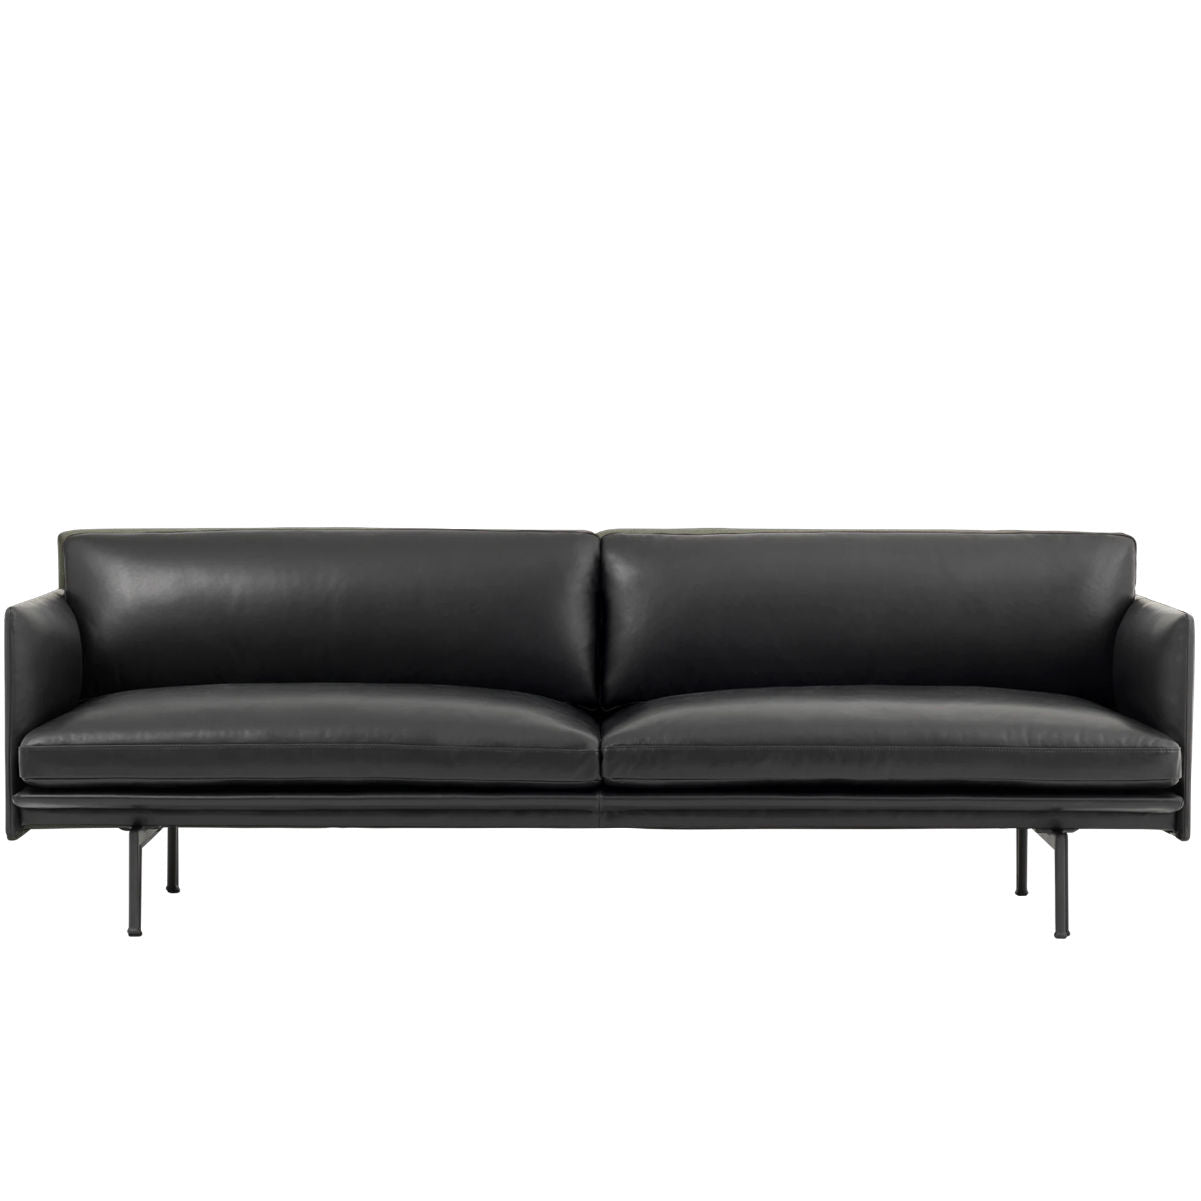 Muuto Outline sofa, 3-seater, refine leather black, black steel leg